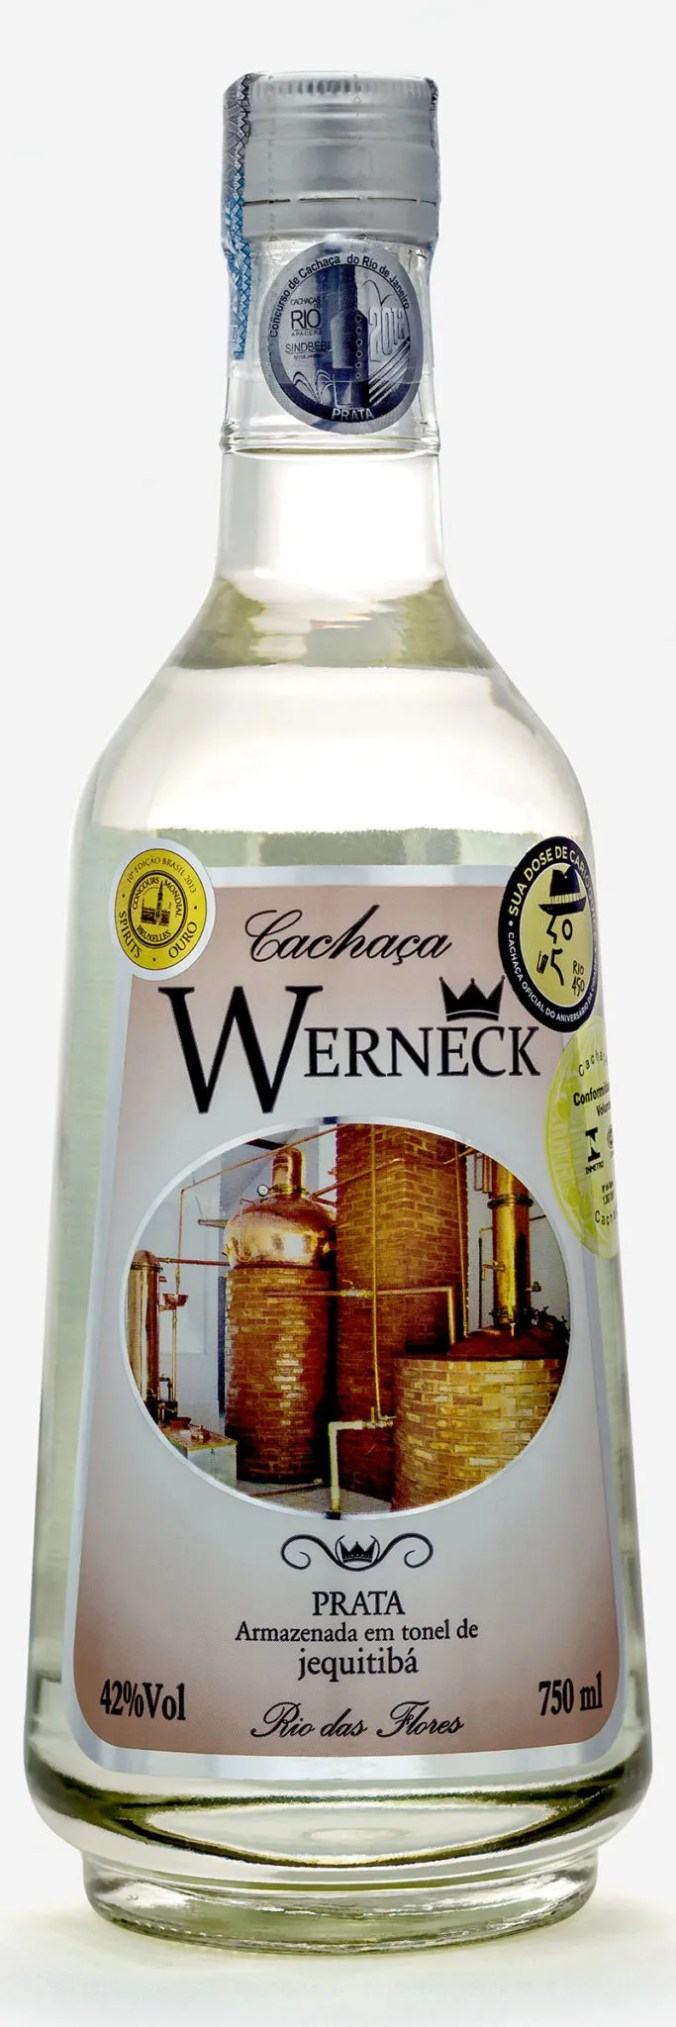 Cachaça Werneck Prata rests for a minimum of eight months in vats made out of Brazilian Jequitibá wood.